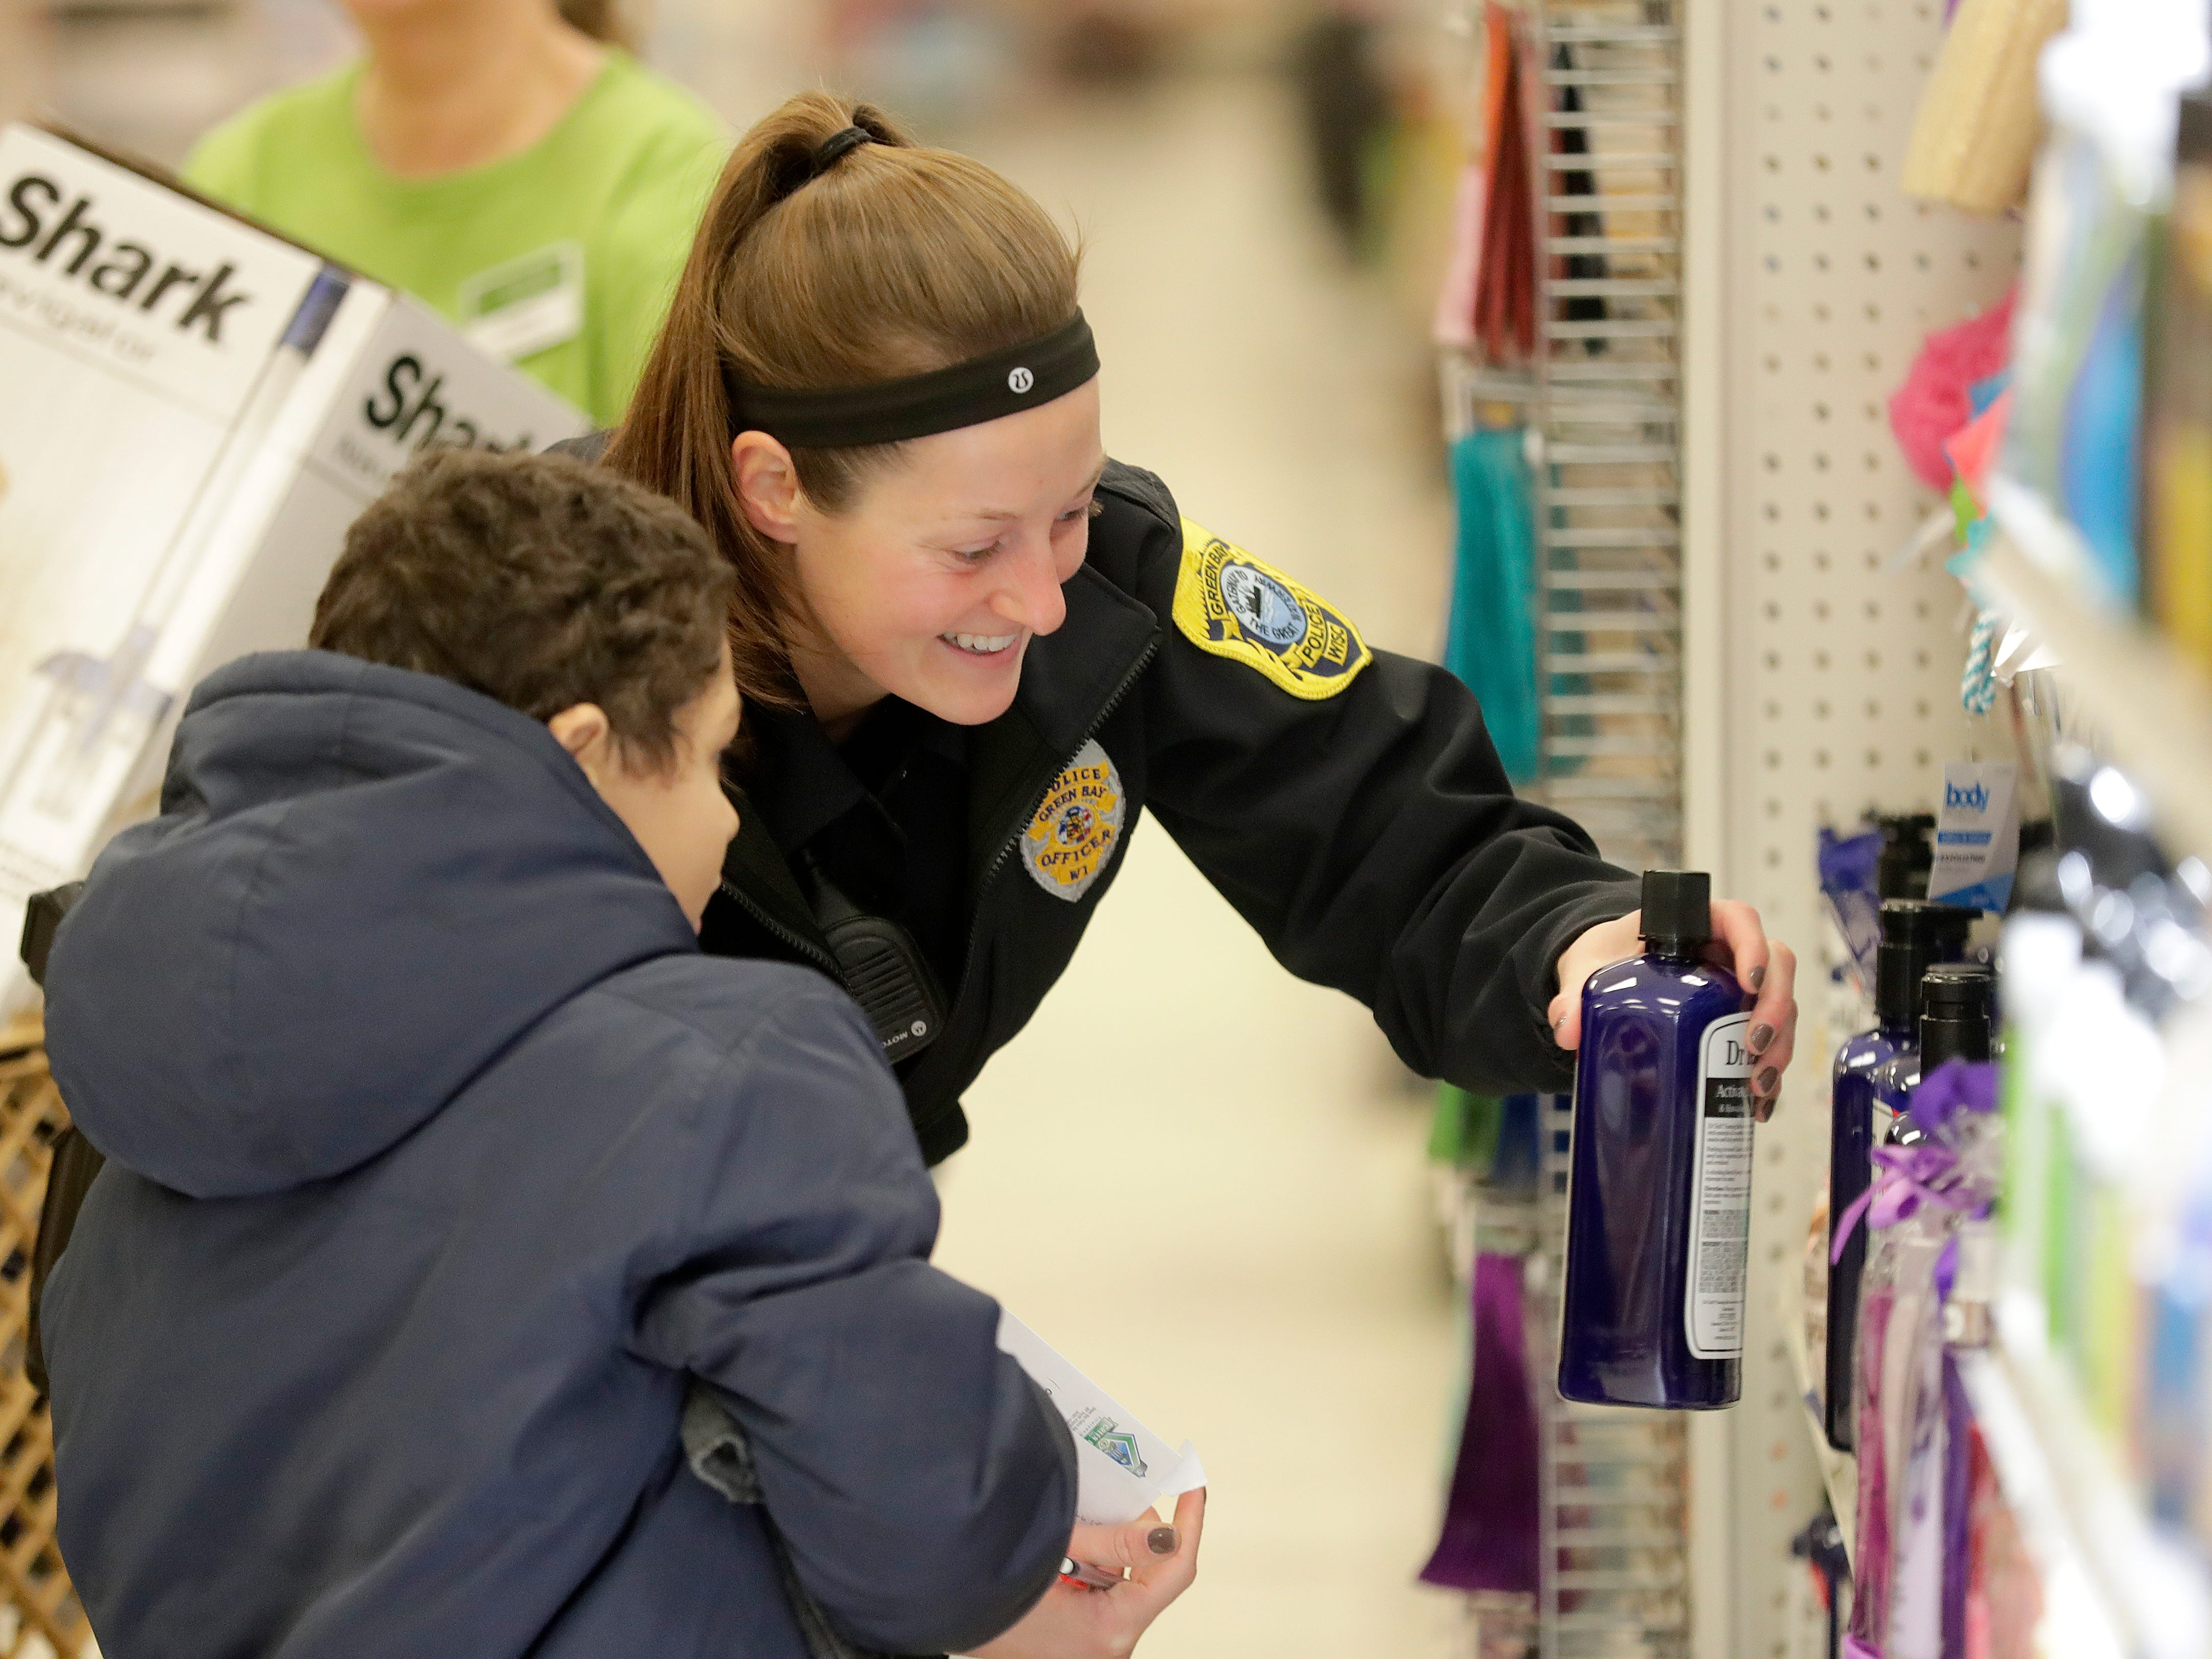 Green Bay Police Department Officer Cristey Johnson shops with her Shop with A Cop program kid at Shopko on East Mason Street December 8, 2018 in Green Bay, Wis. This is the 26th year area law enforcement officers have Christmas shopped with kids.